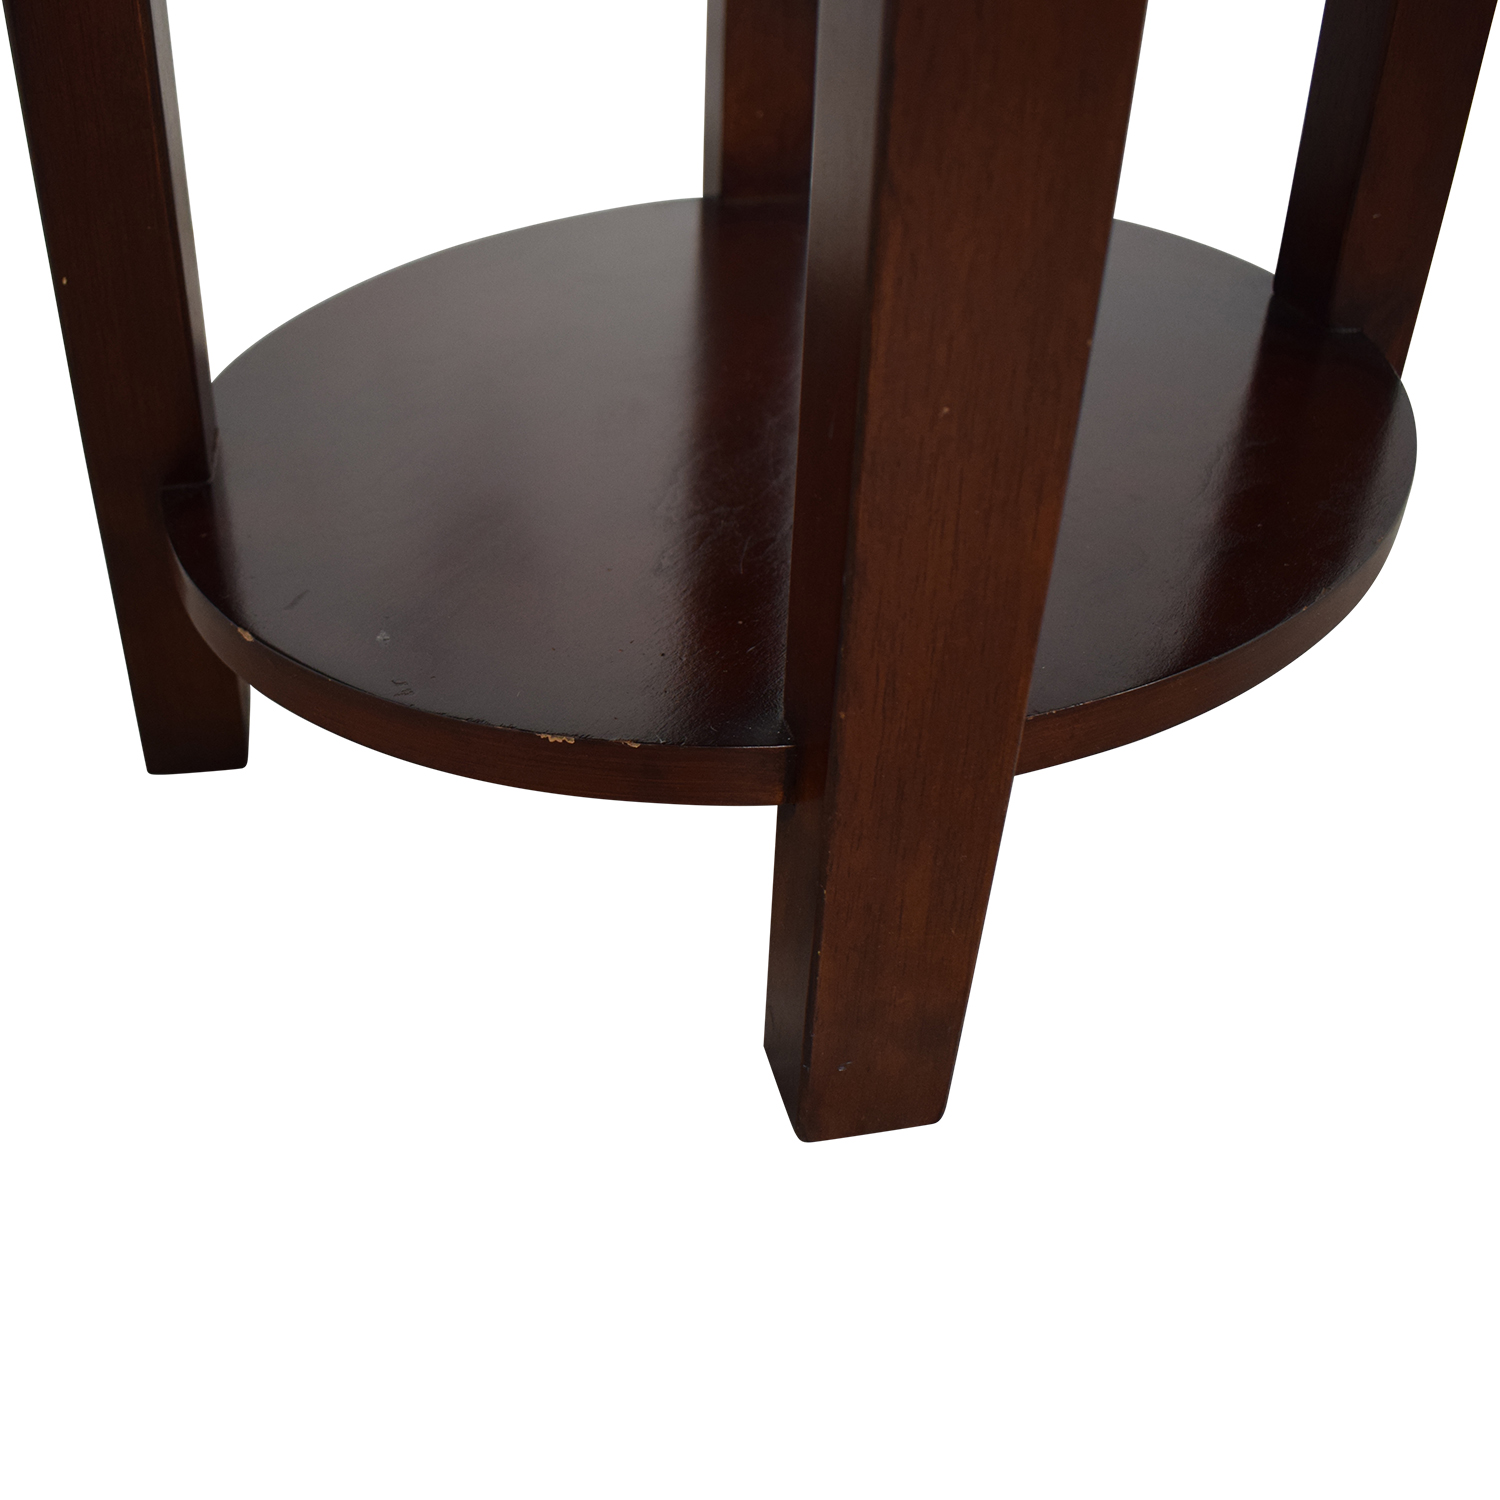 Pottery Barn End Table sale